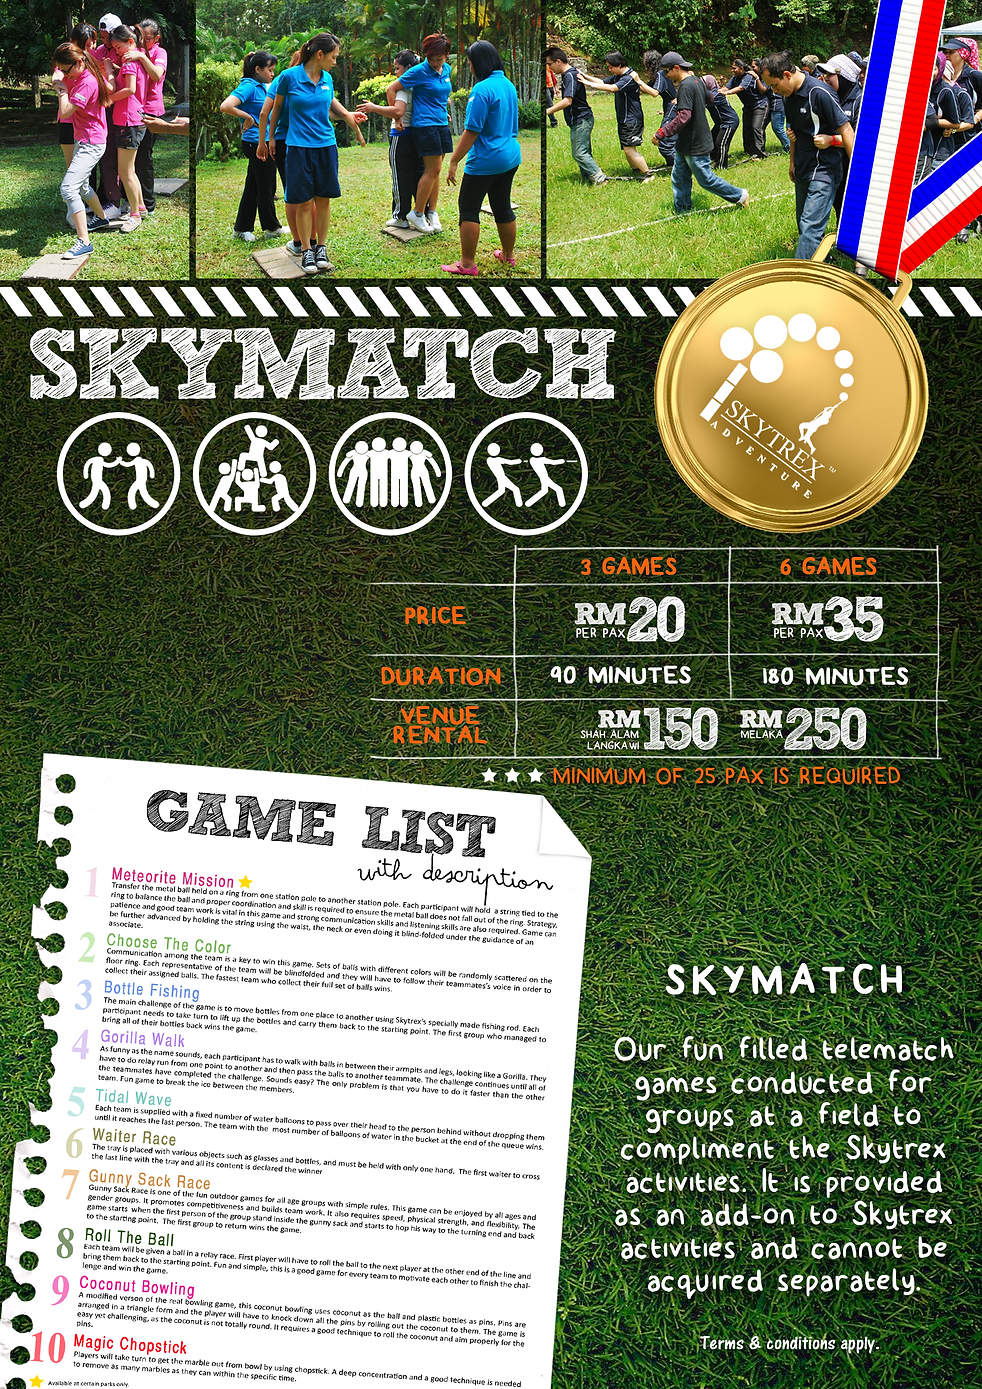 06 Skymatch revised_02.png